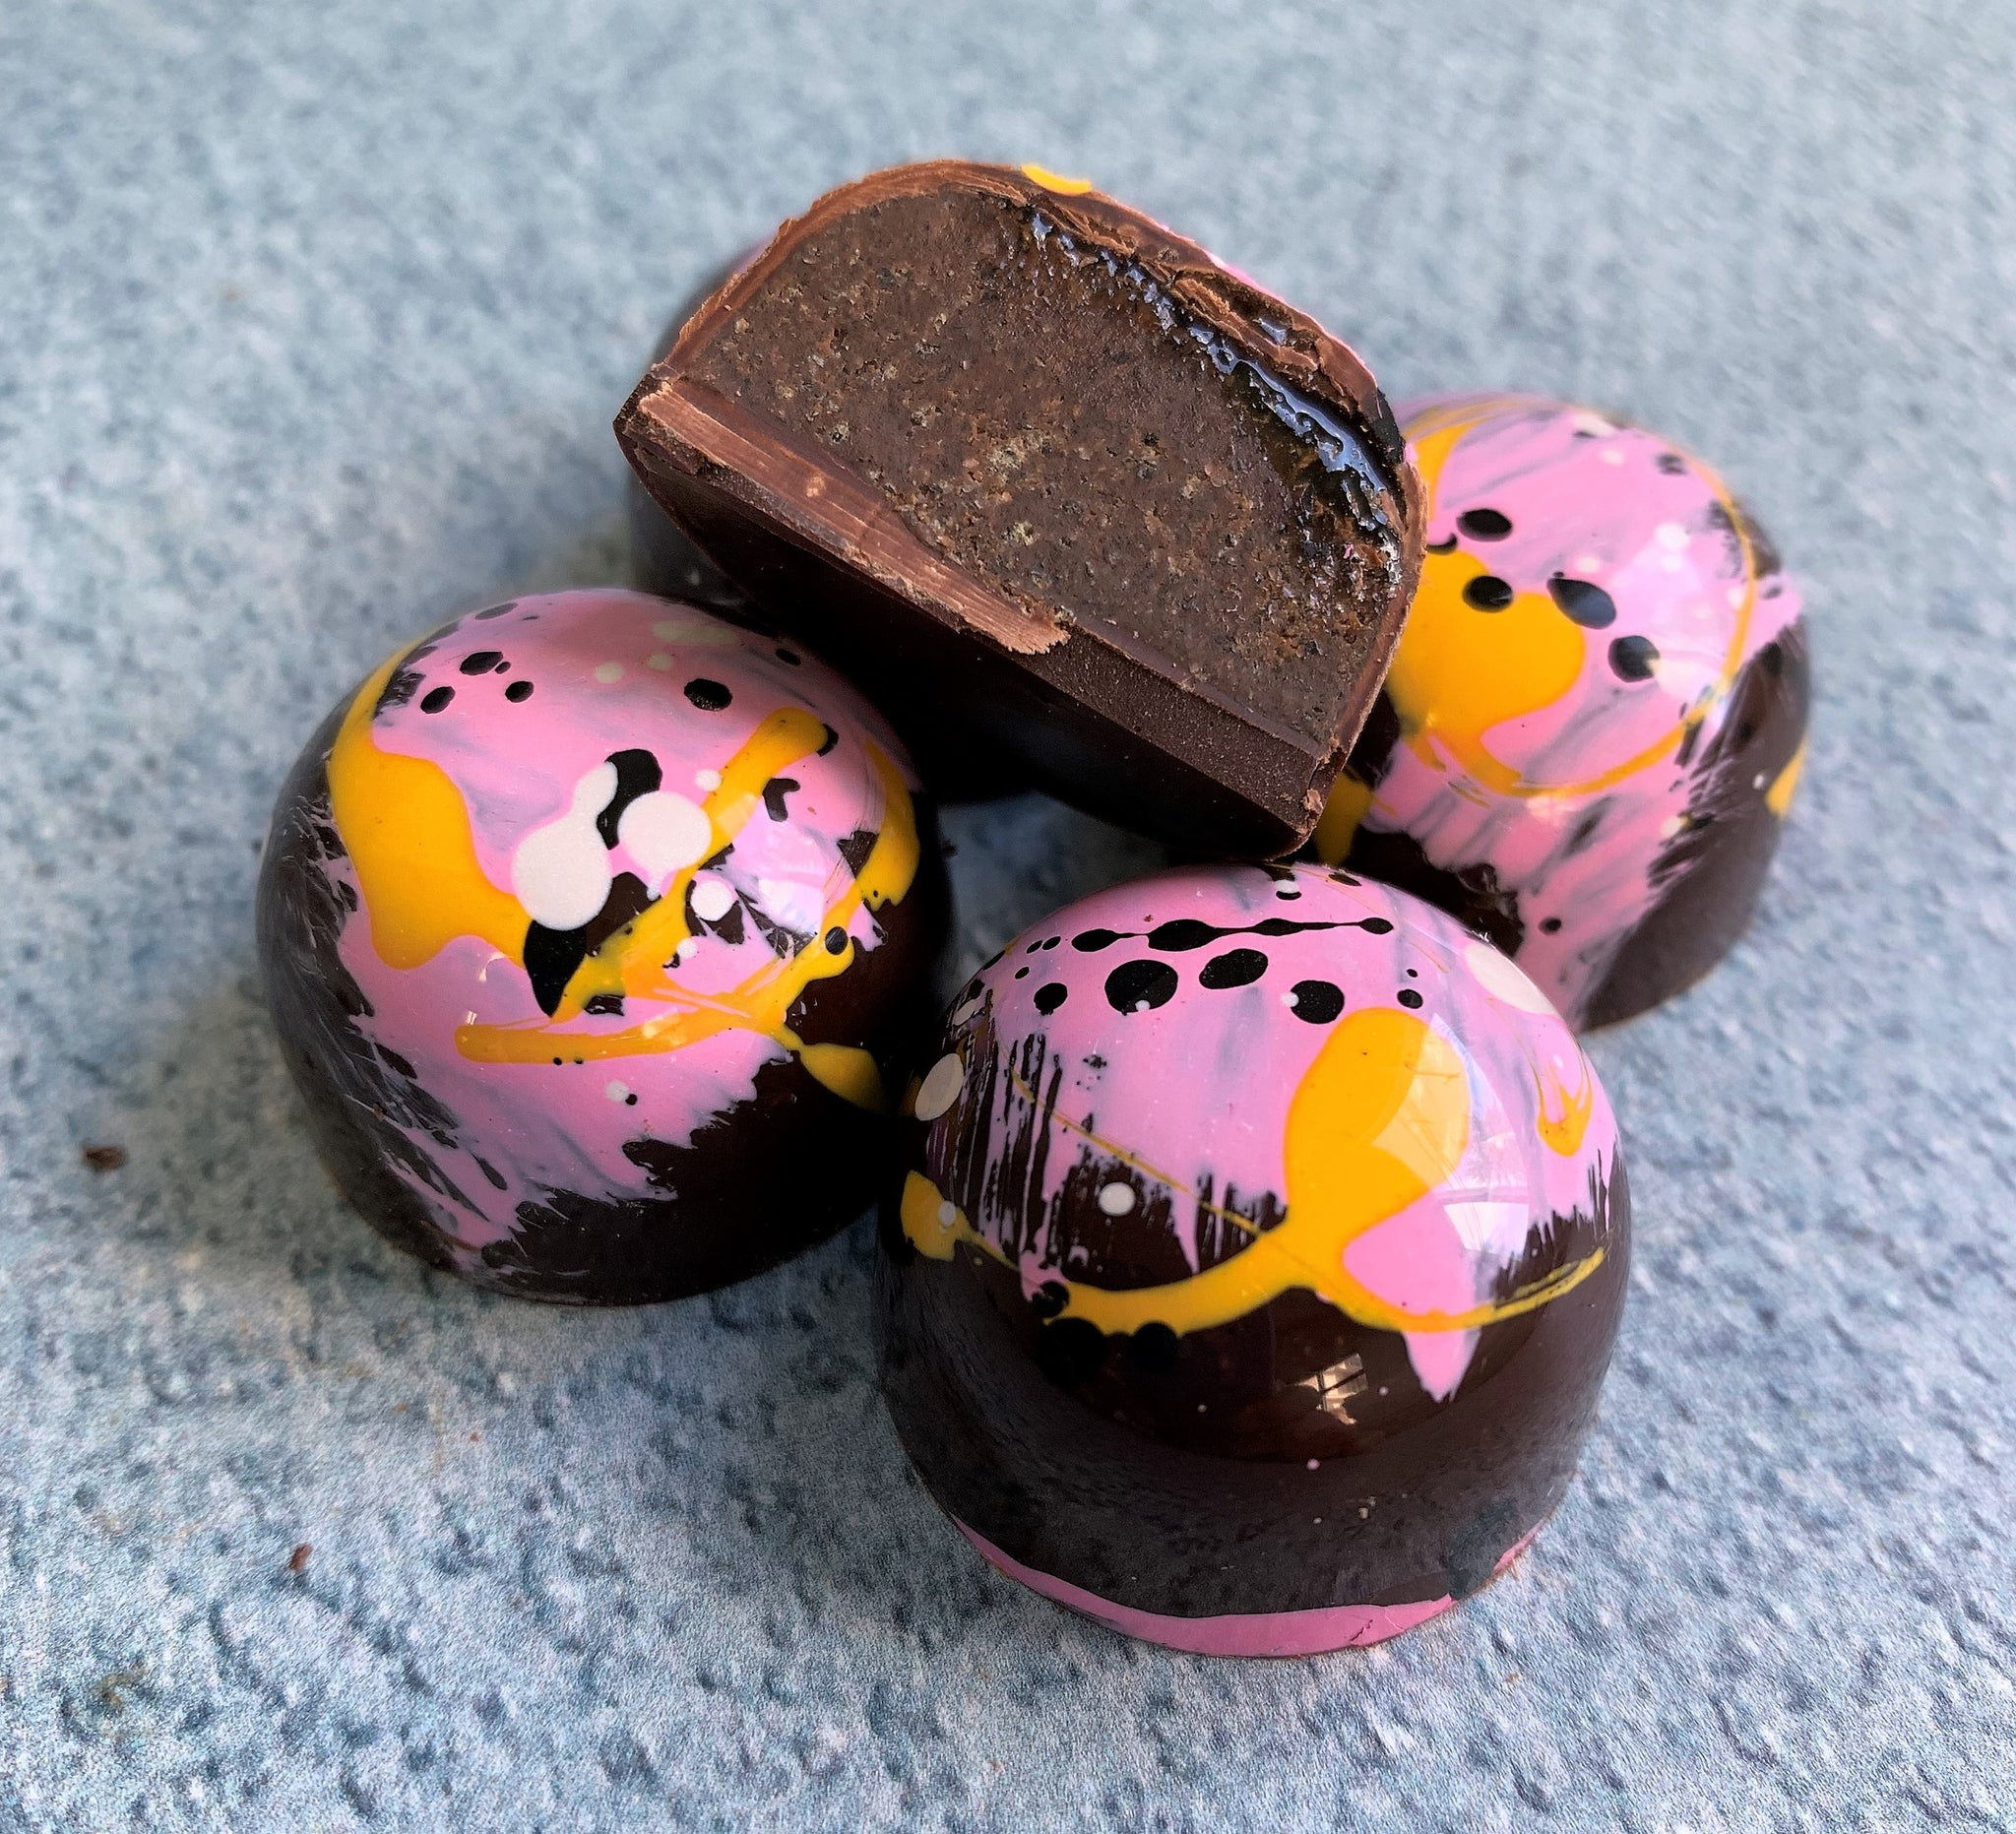 Early Spring Bonbons